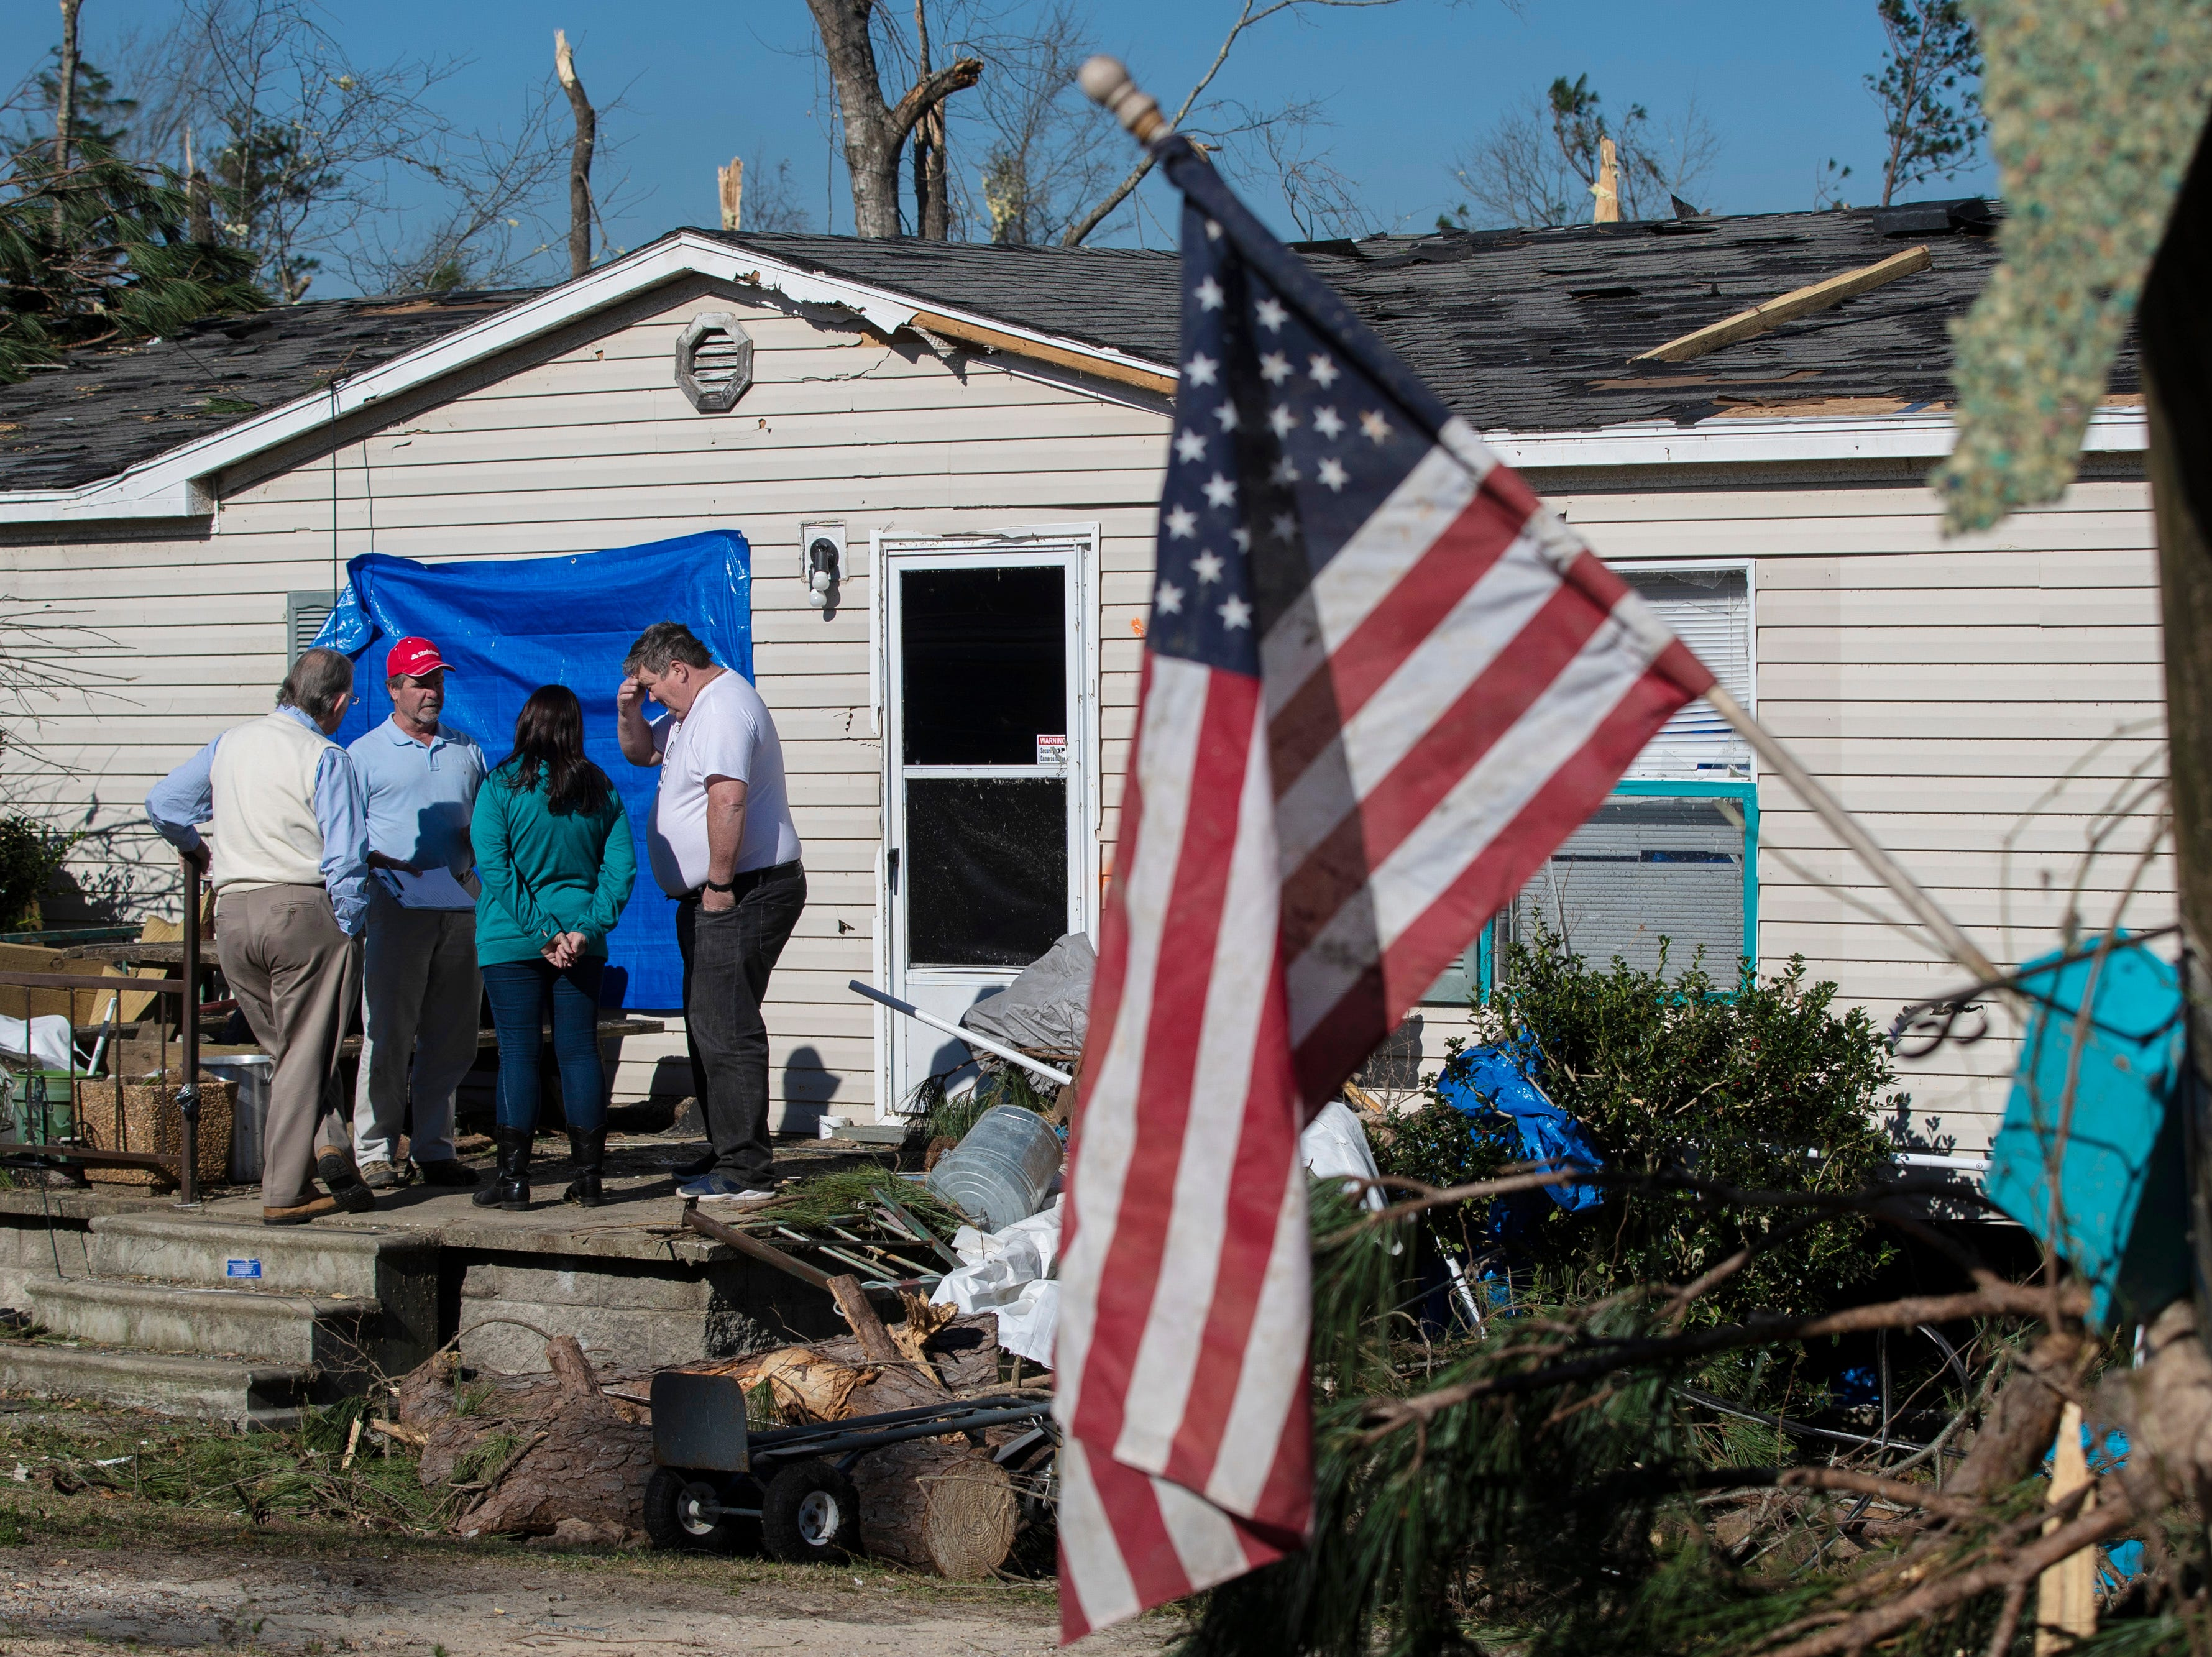 Richard Widger, right, and Sondra Widger talk with their insurance agent as they deal with the damage to their home in Beauregard, Ala. on March 6, 2019.